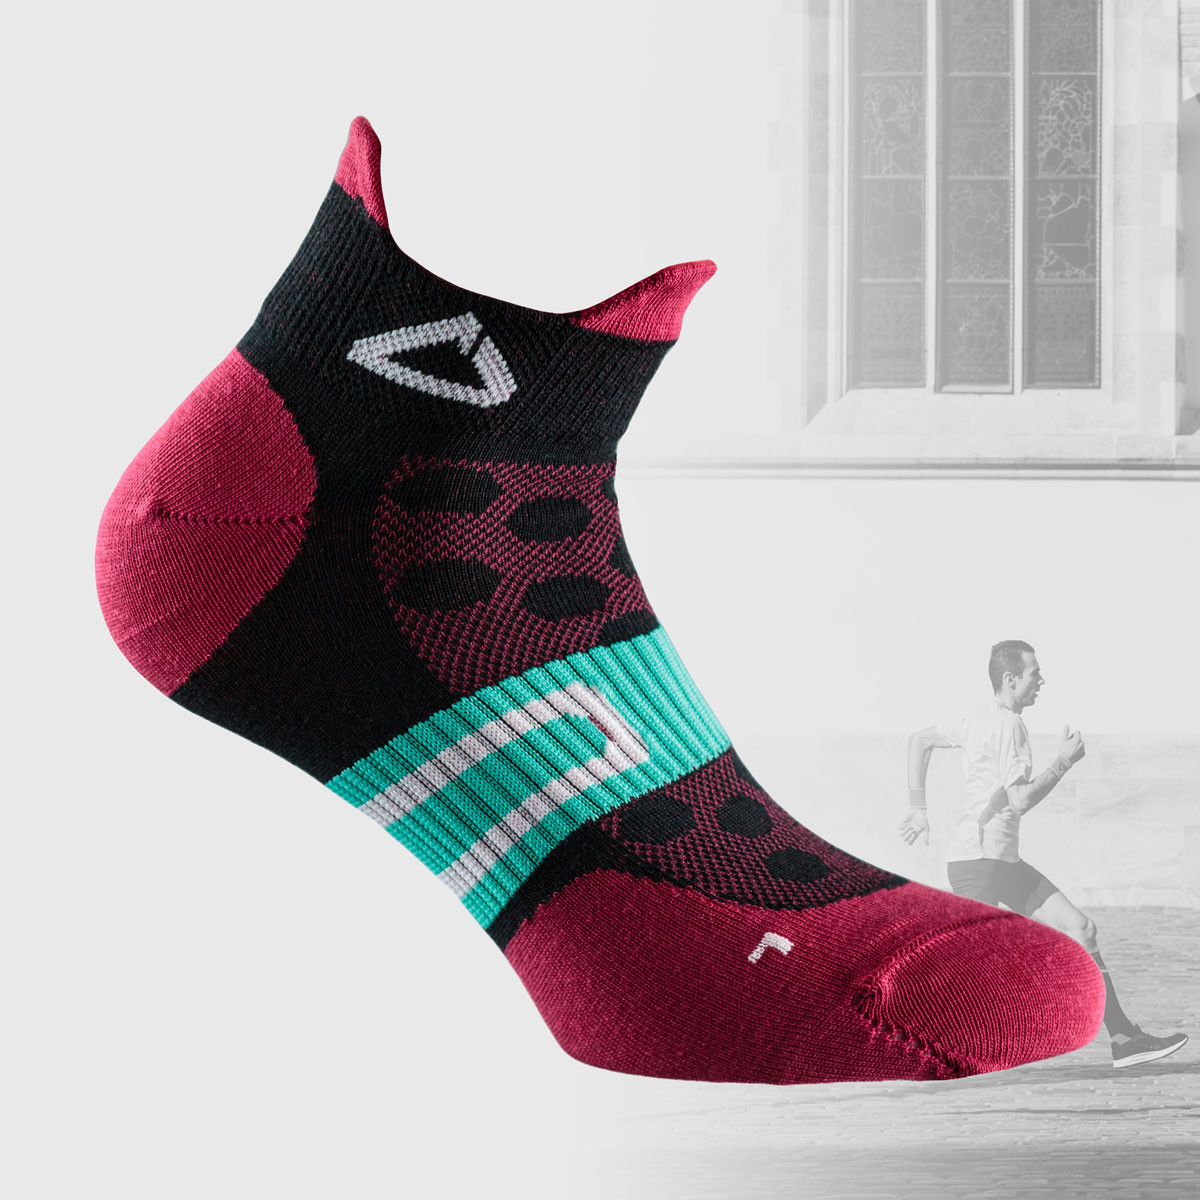 colorful running socks from dogma